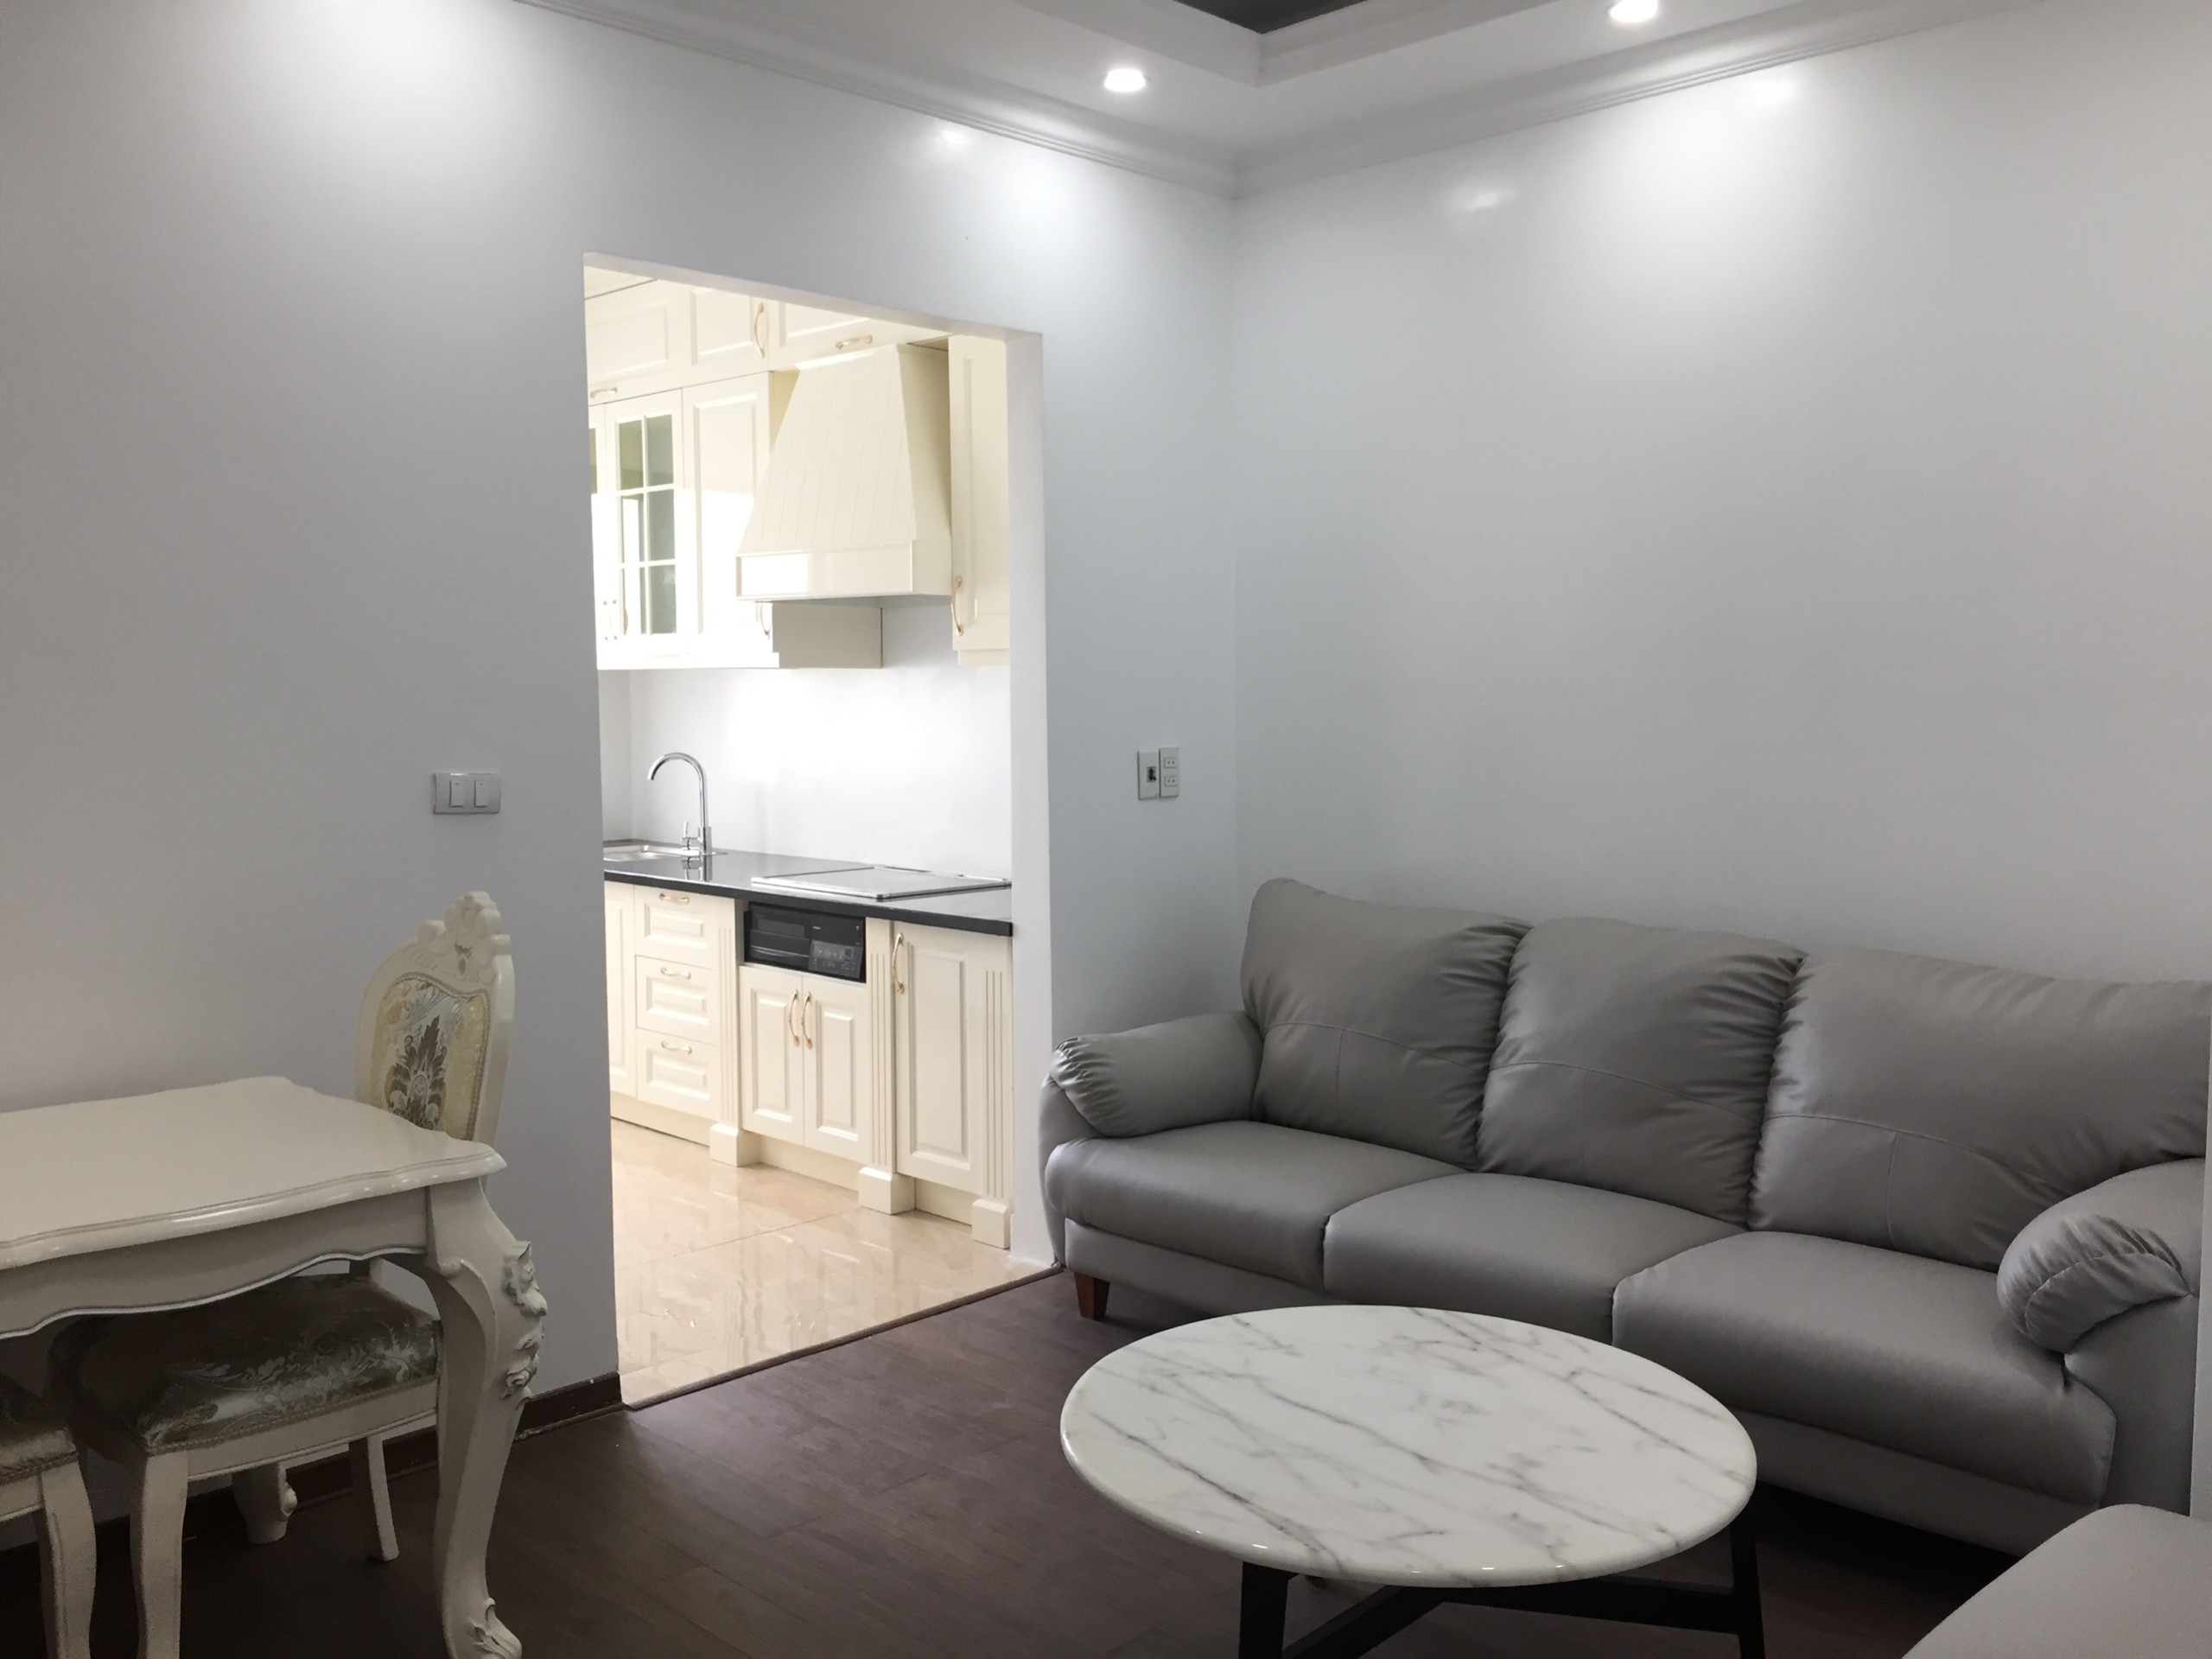 Nice furnished apartmet/flat for rent at Le Hong Phong str., Hai Phong city